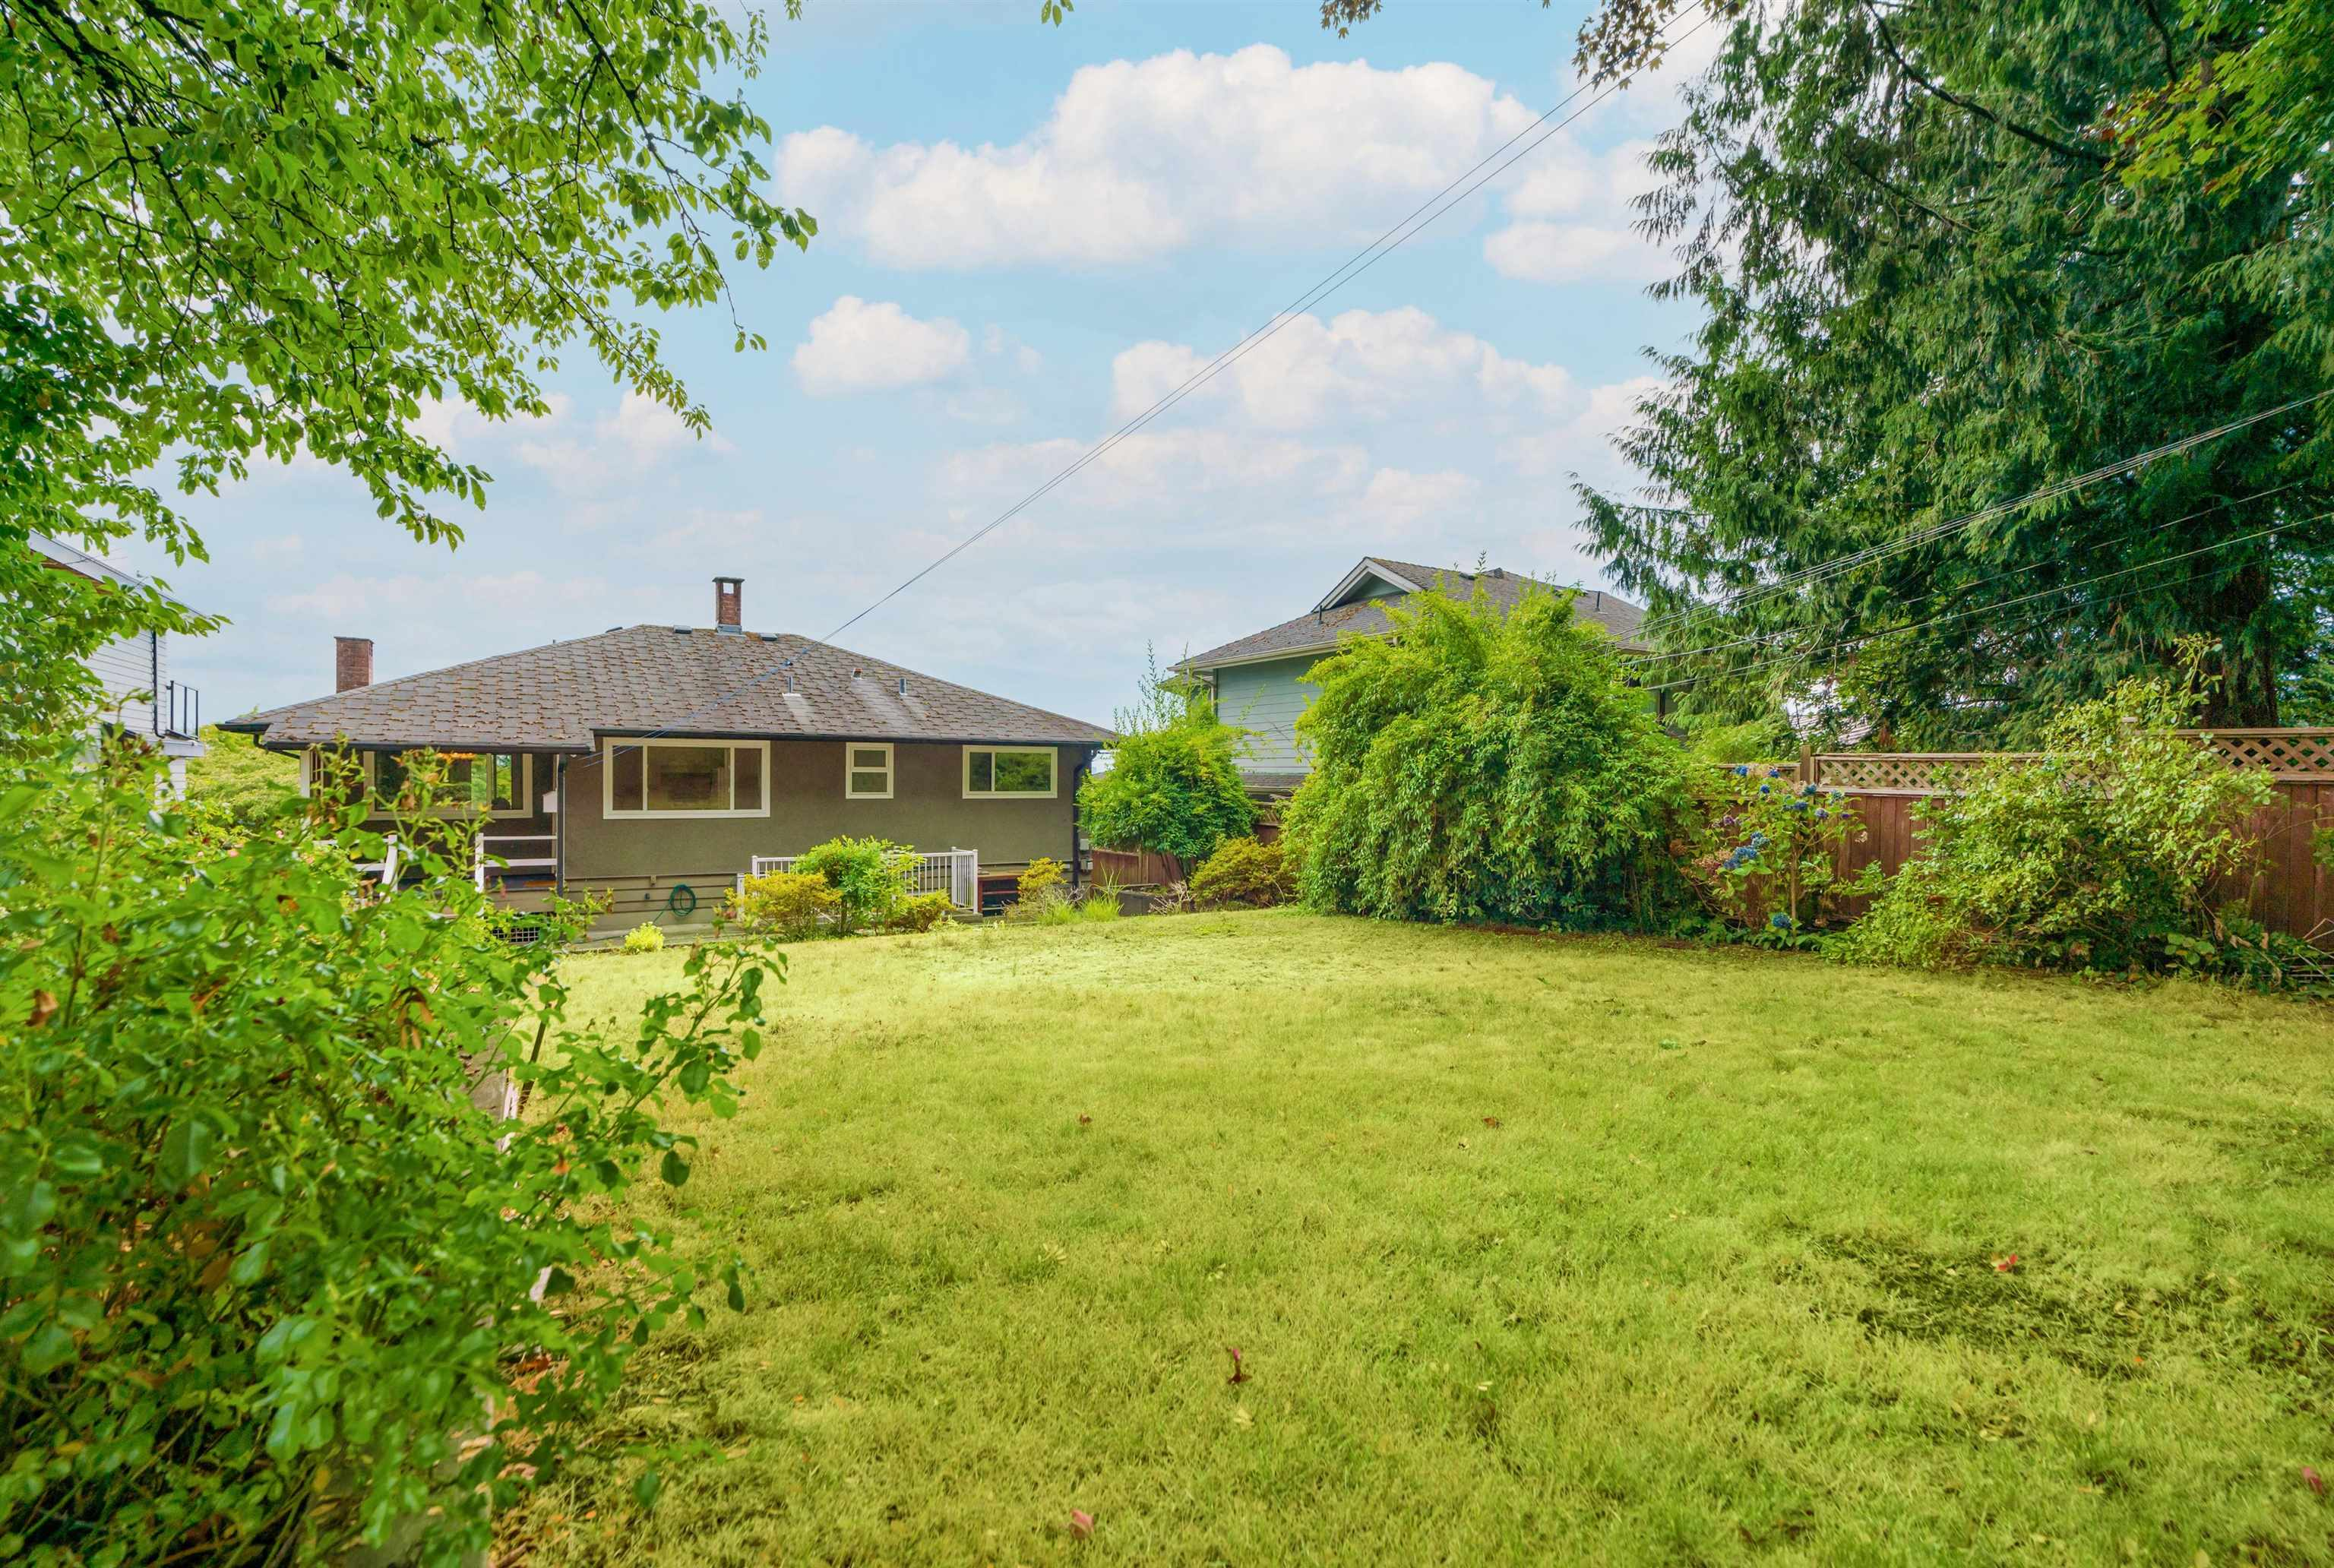 962 WHITCHURCH STREET - Calverhall House/Single Family for sale, 4 Bedrooms (R2609417) - #18